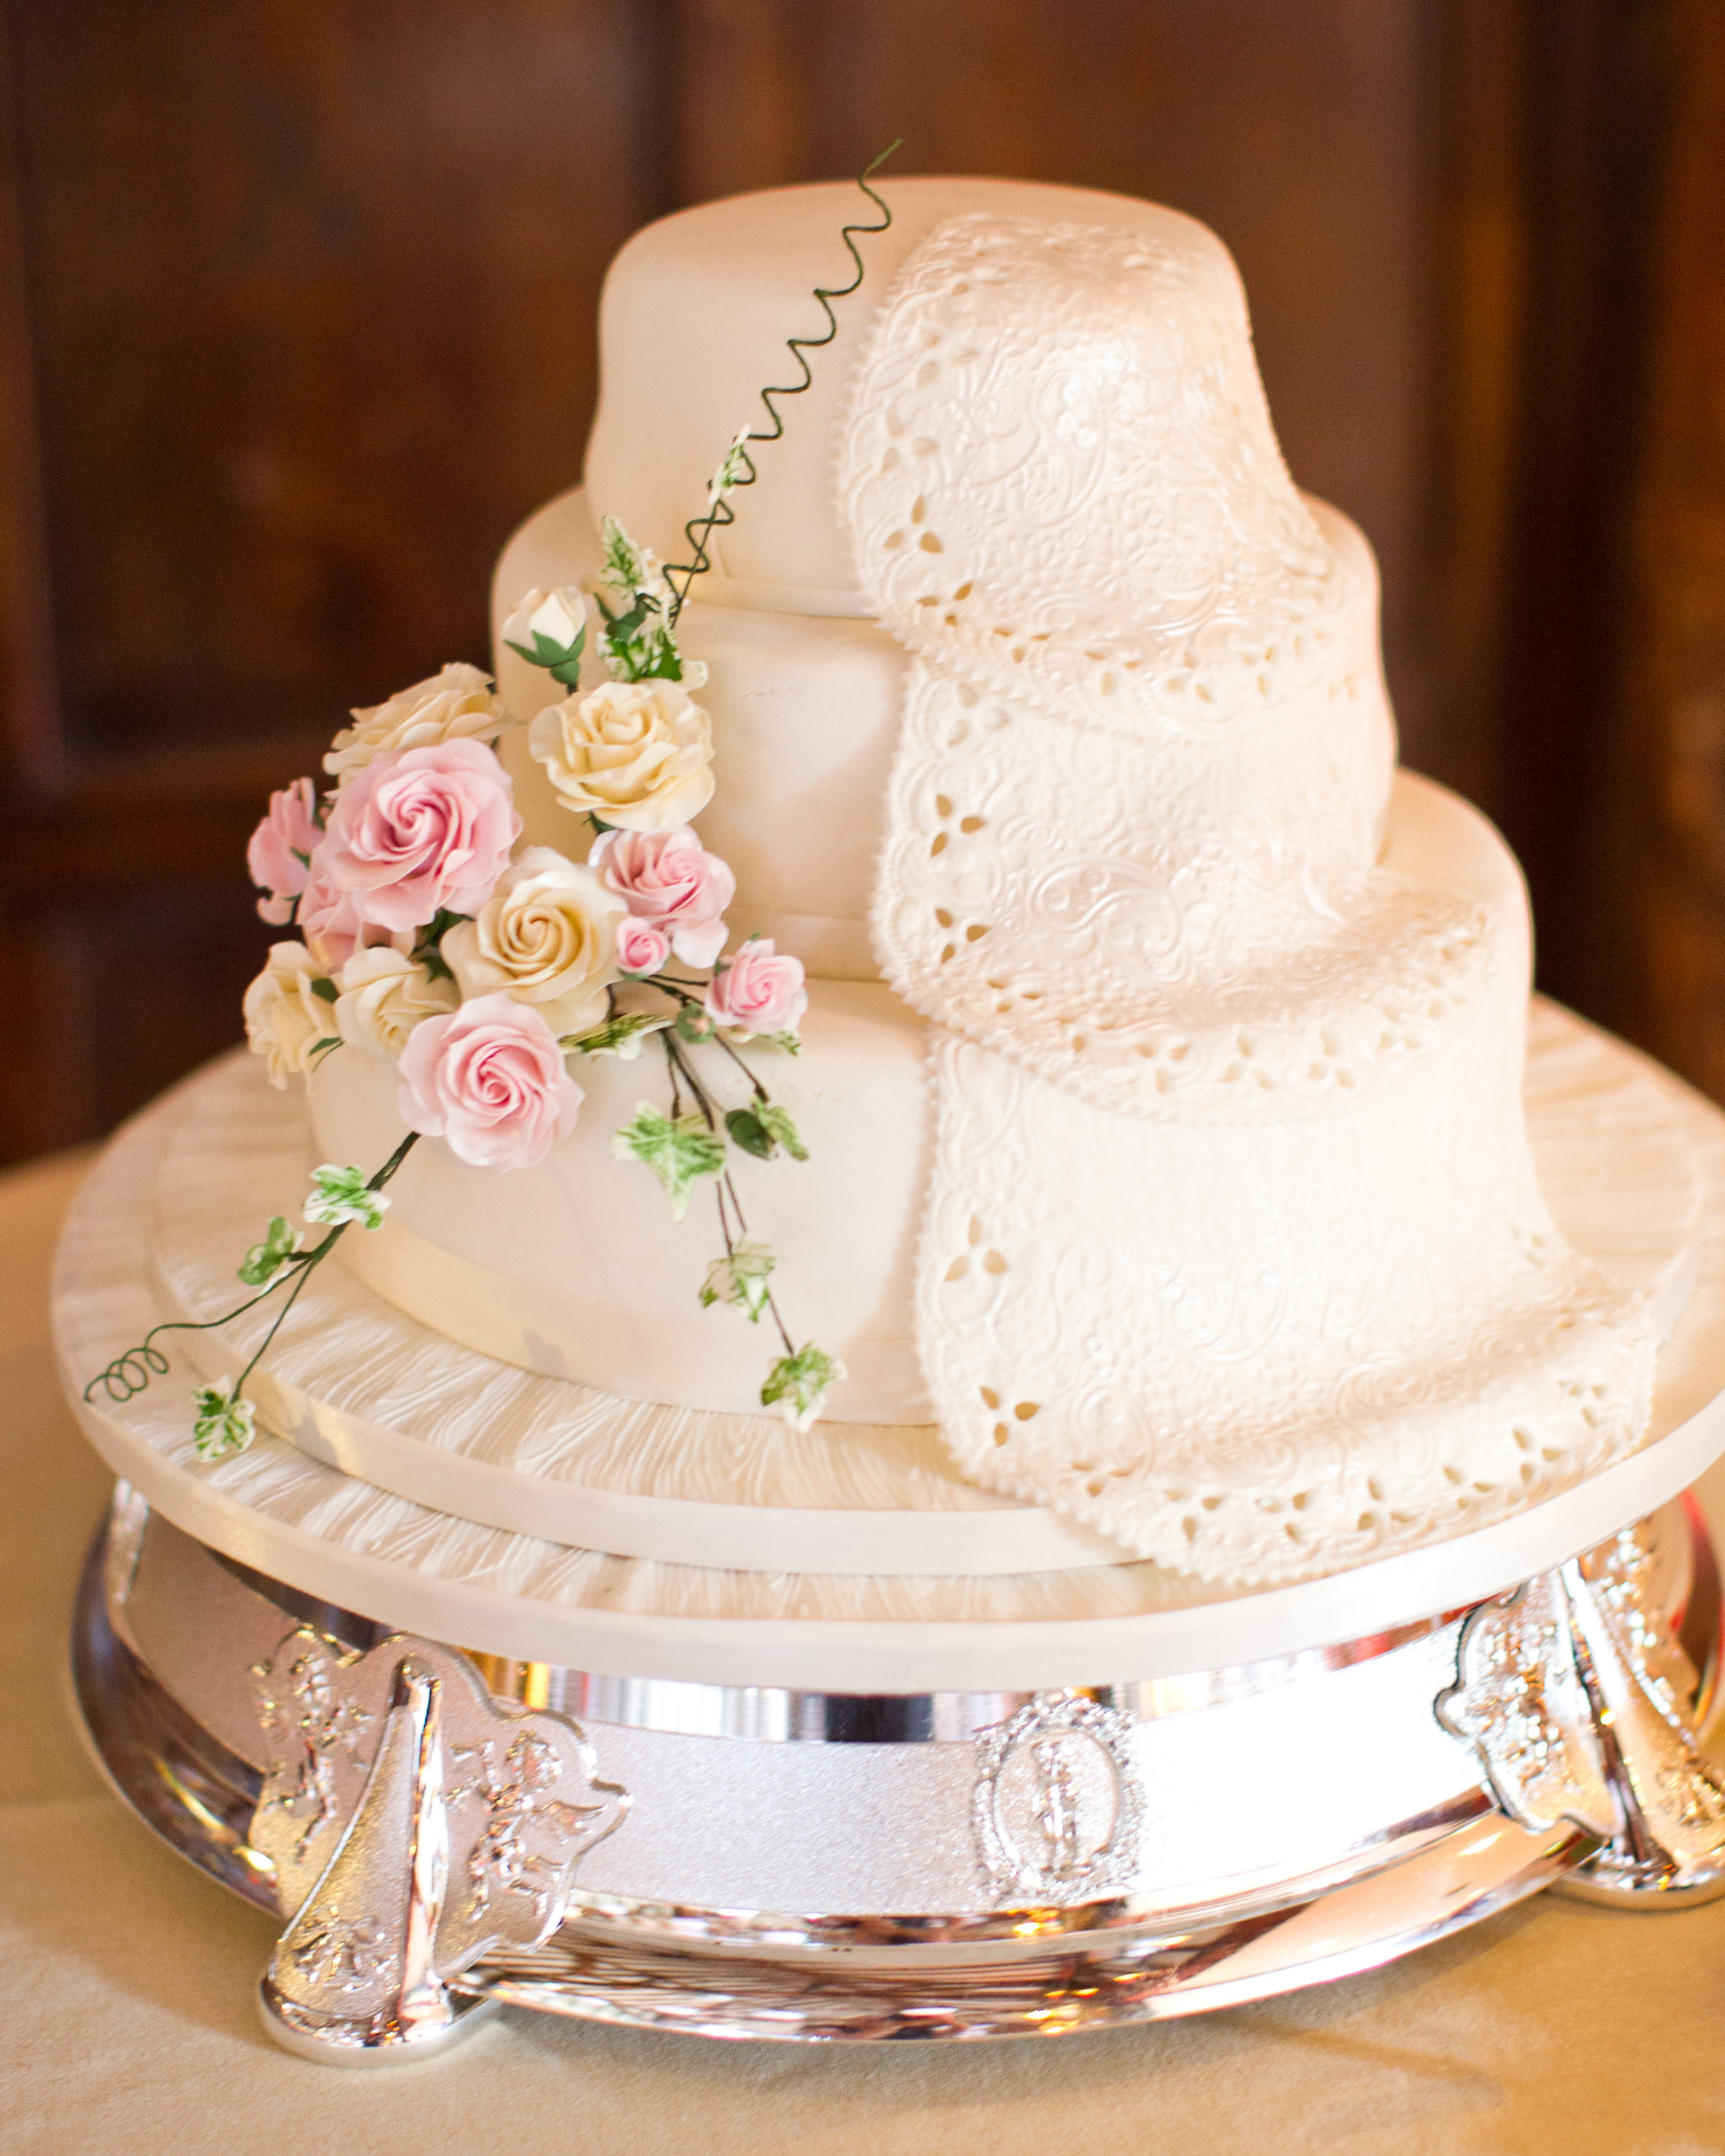 hayley-andrew-wedding-cake-0714.jpg